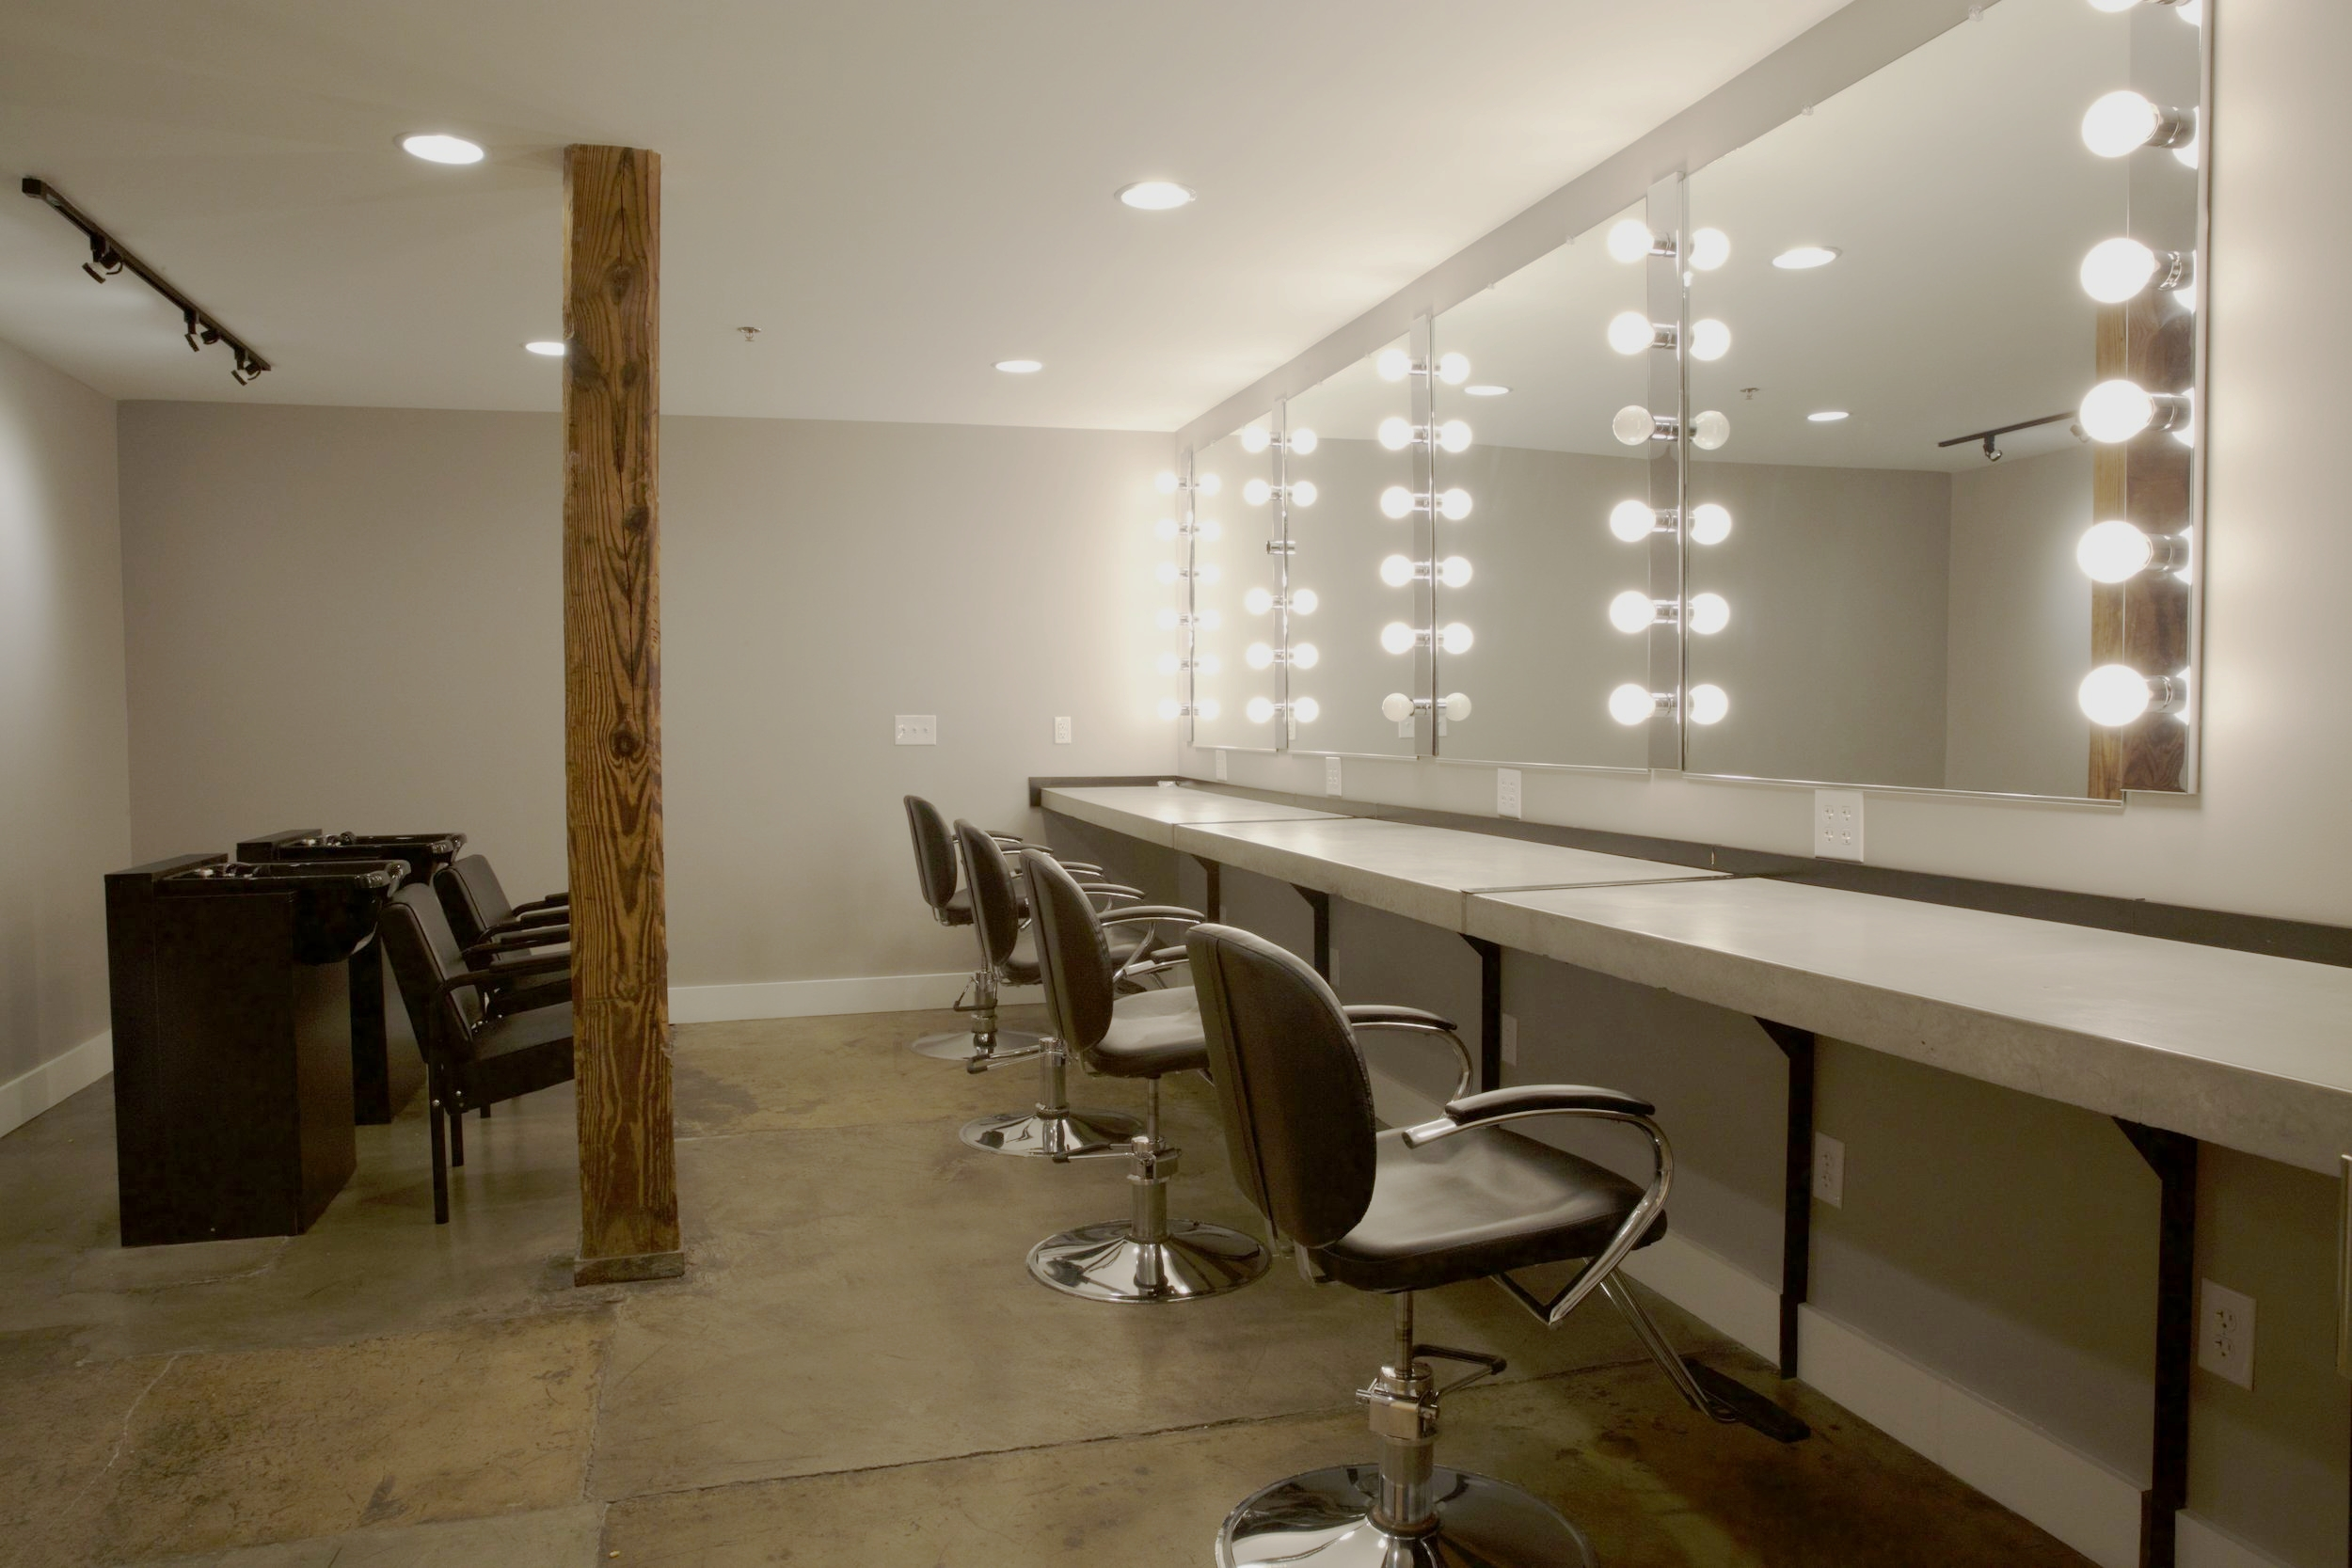 Complete hair and make-up room with sinks for actors.